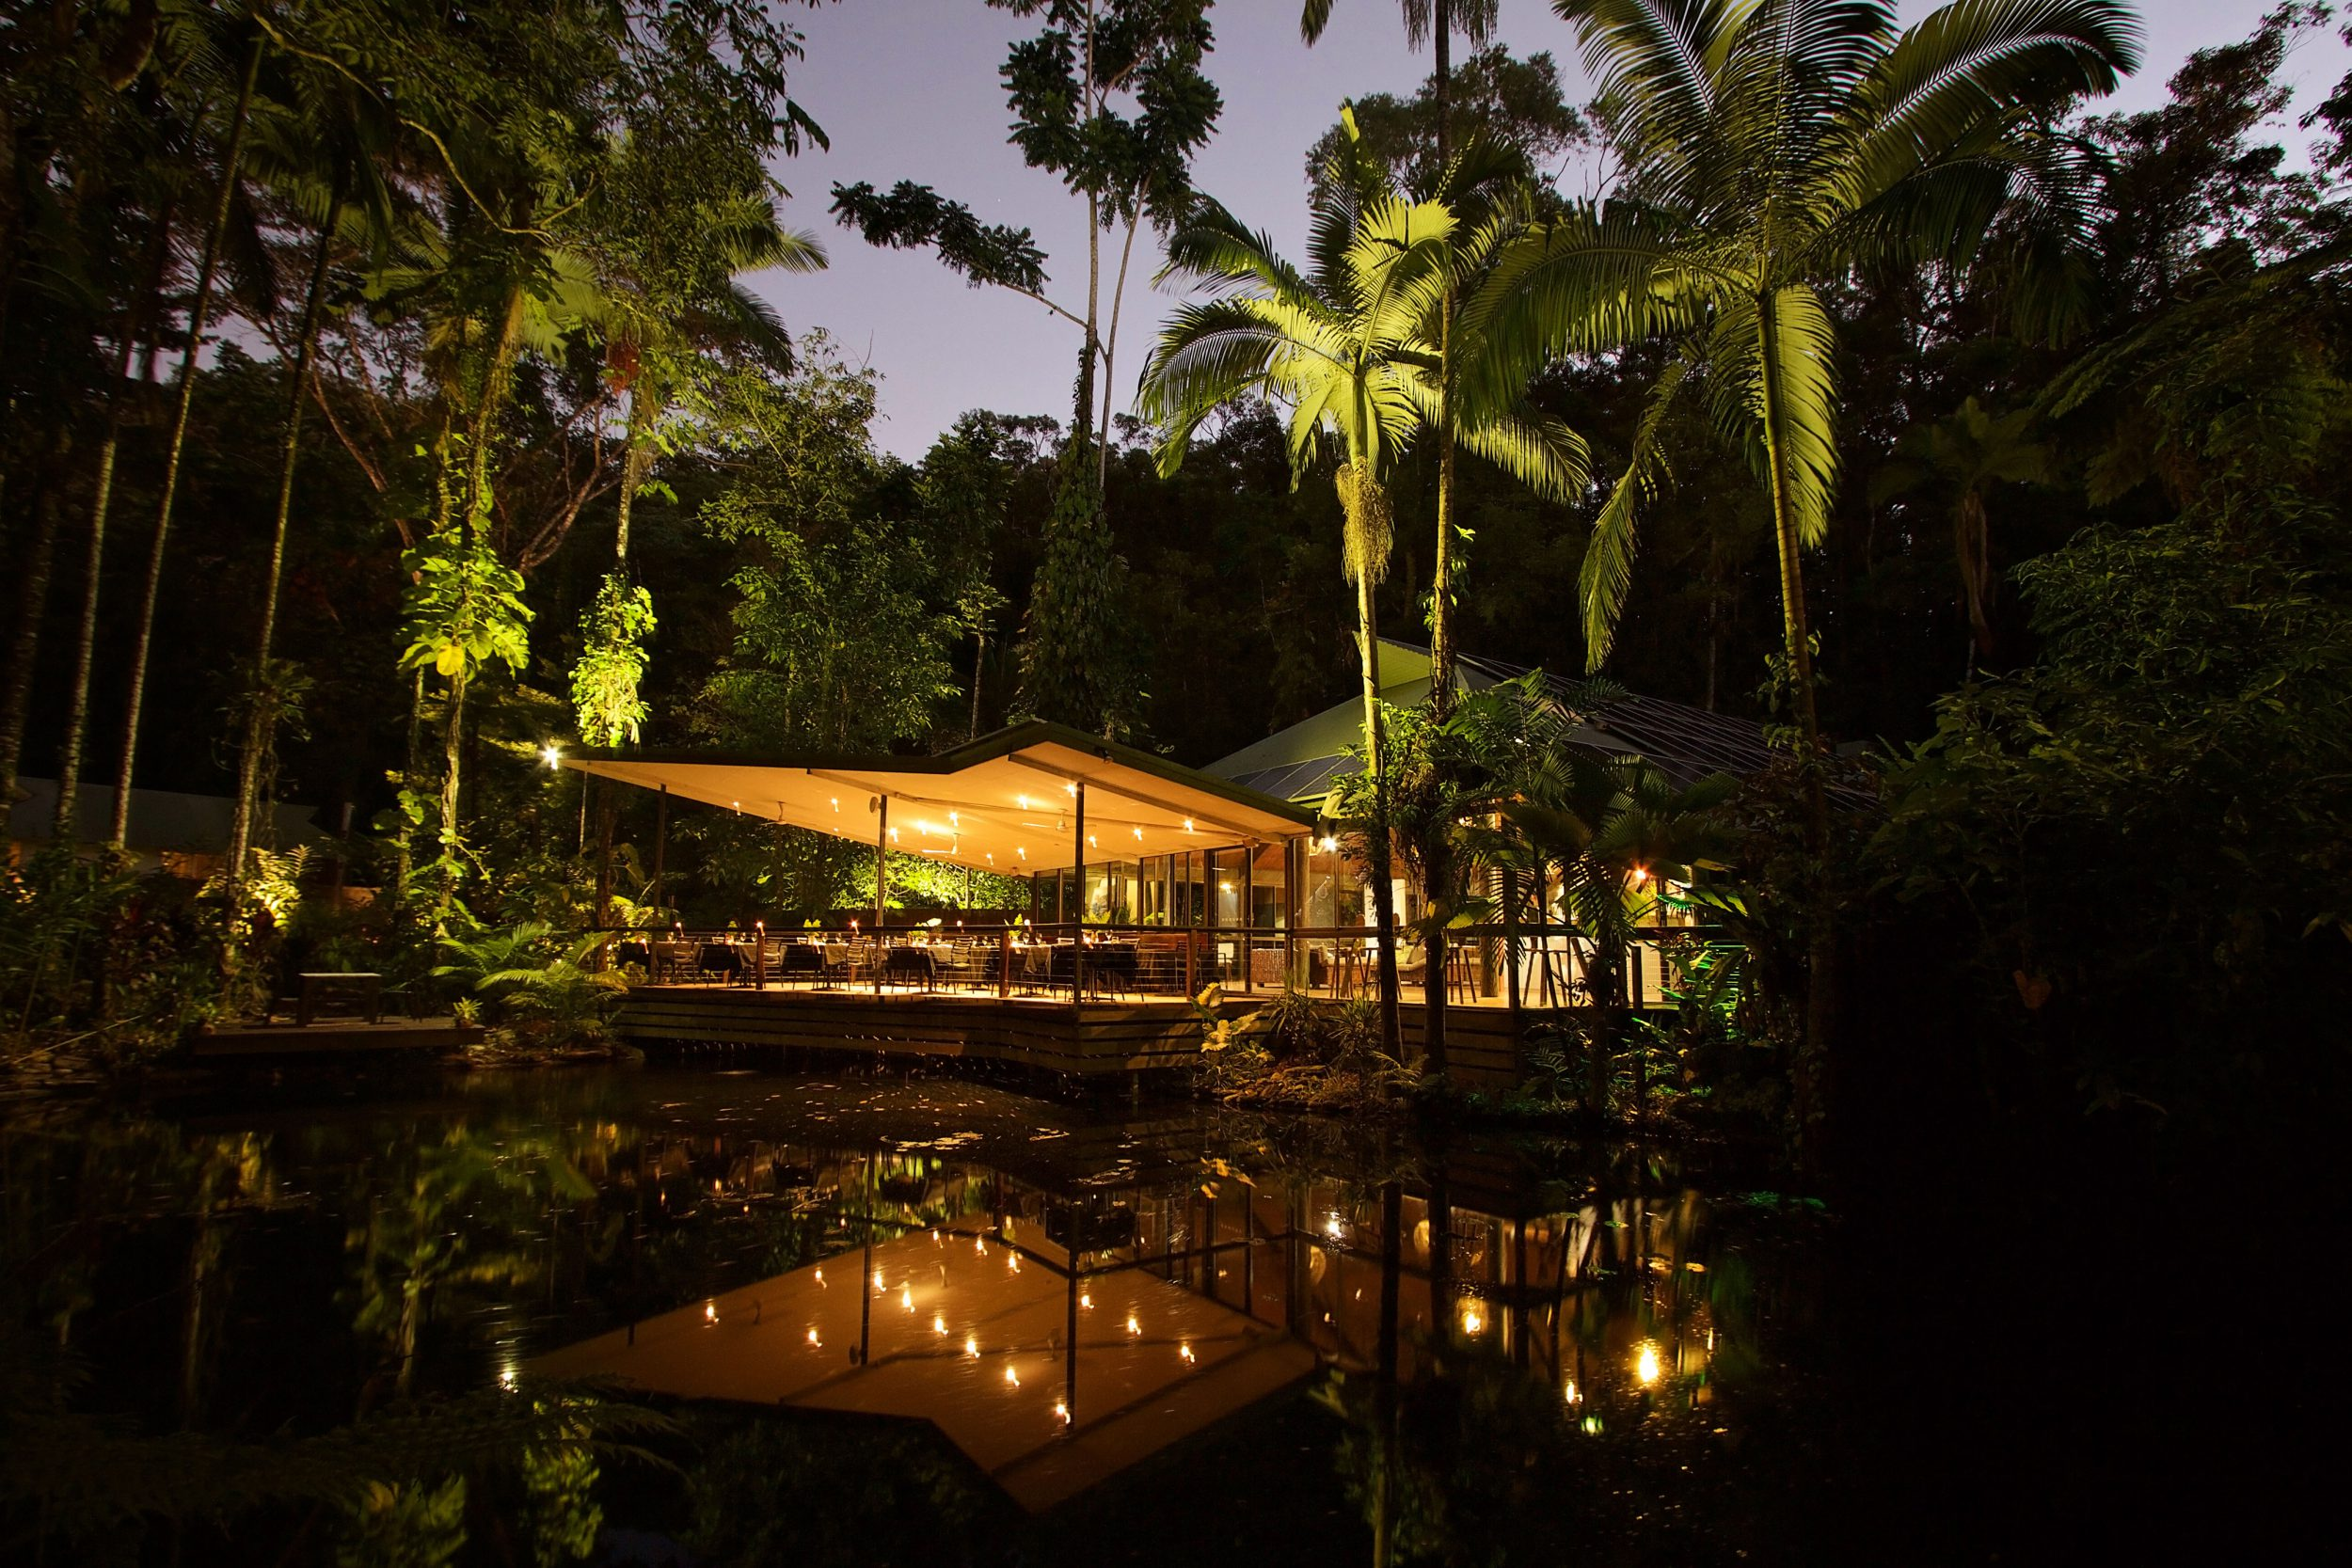 Julaymba Restaurant of Daintree Eco-resort reflected in water at night